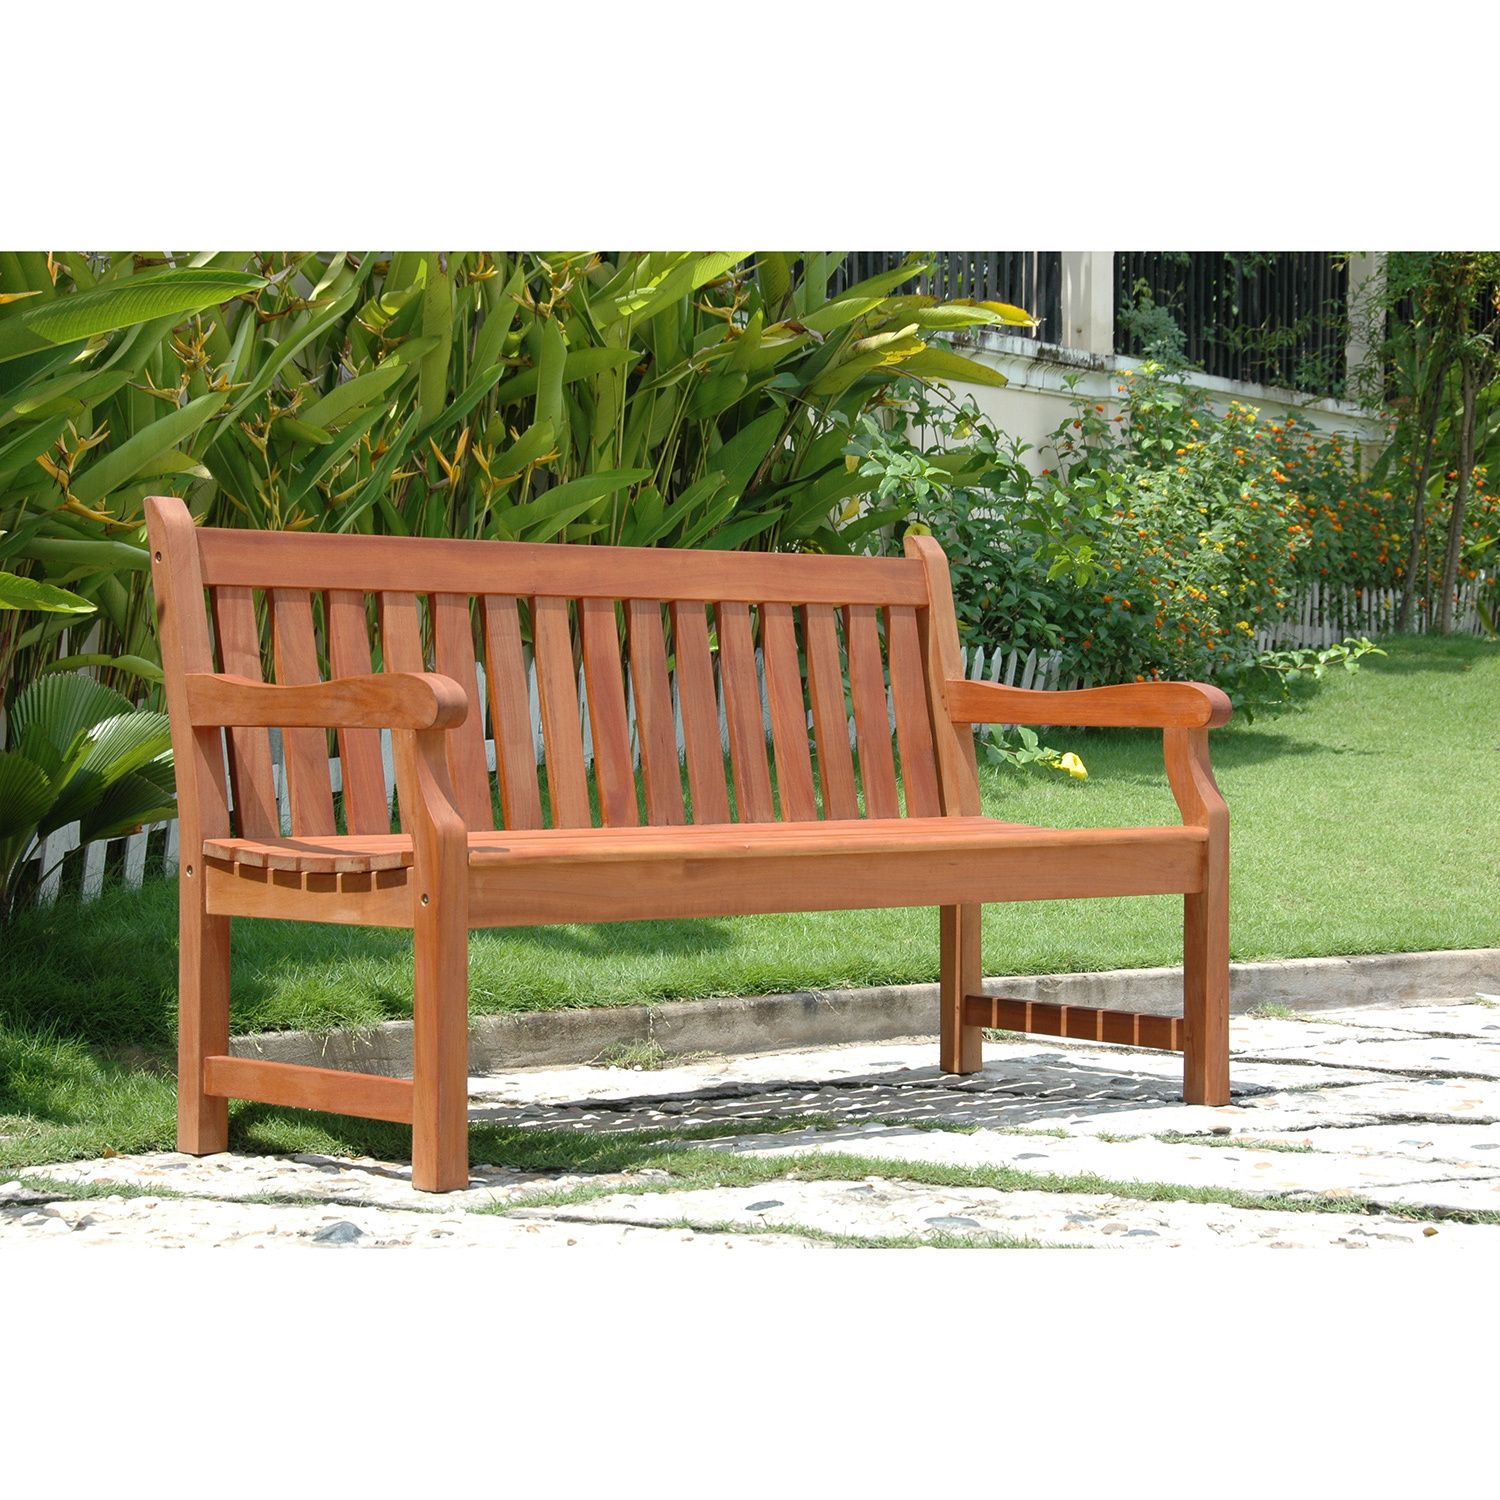 Overstock: Online Shopping – Bedding, Furniture Intended For Wallie Teak Garden Benches (View 14 of 25)